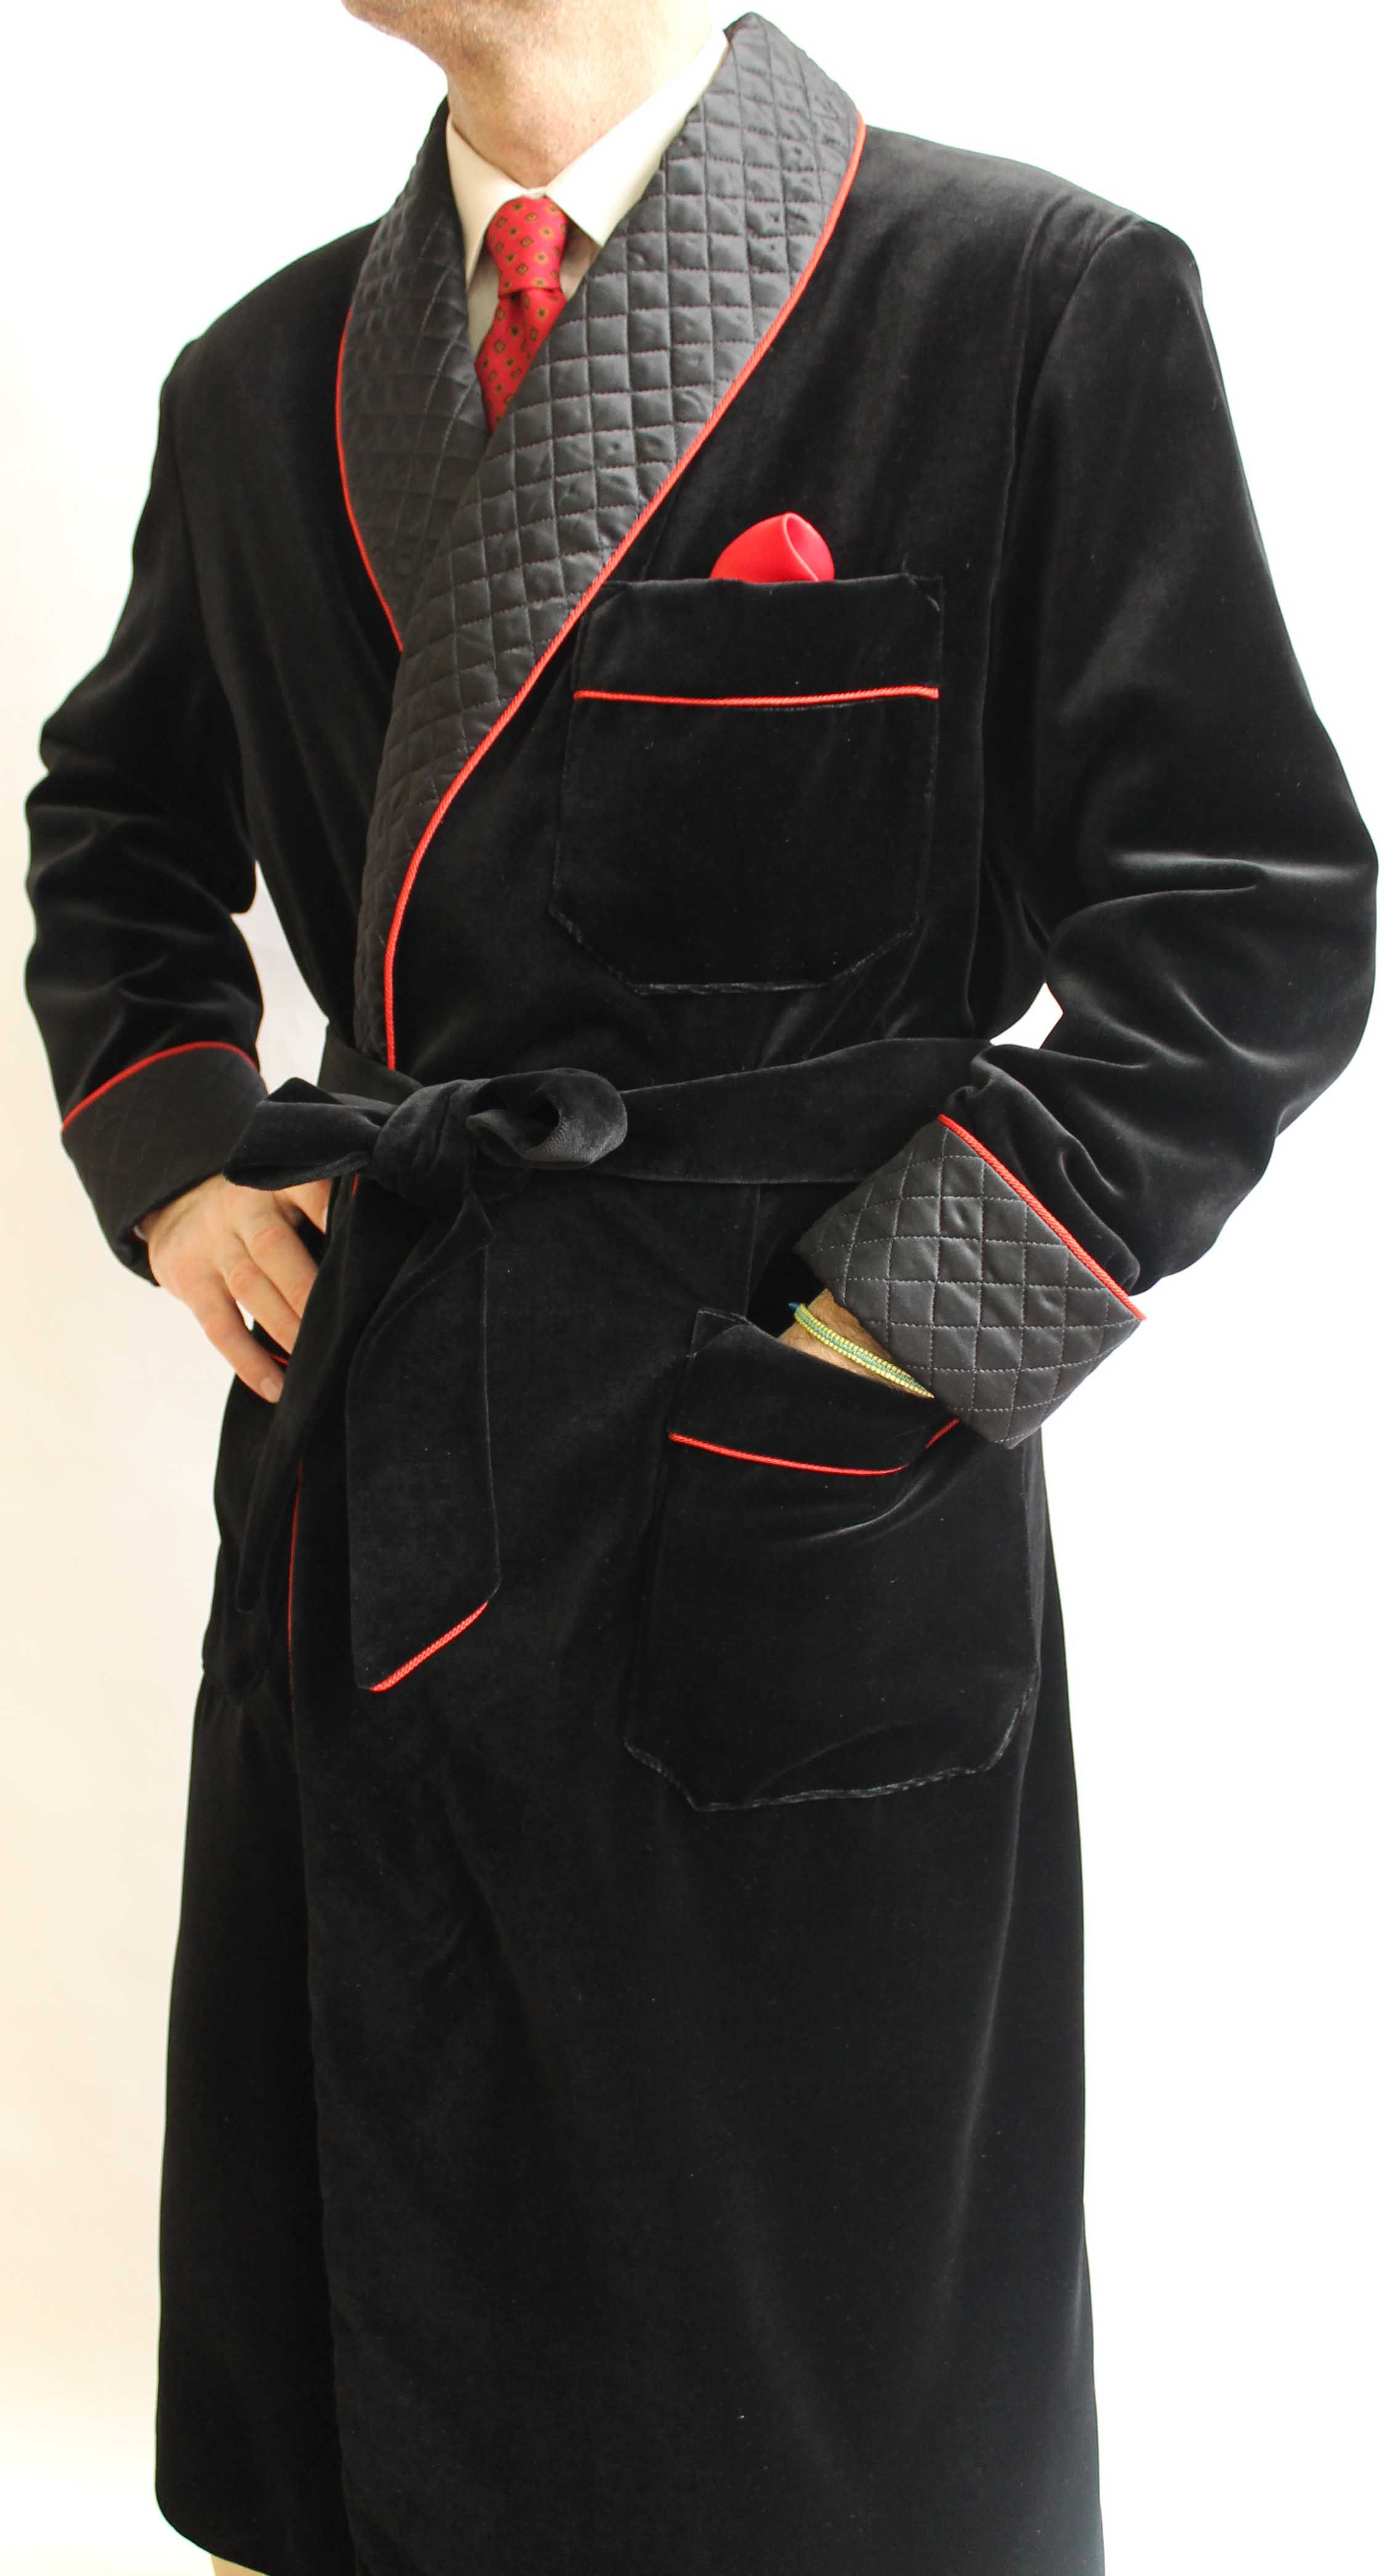 COTTON VELVET CLASSIC DRESSING GOWN FOR MAN FULLY LINED IN BEMBERG ...